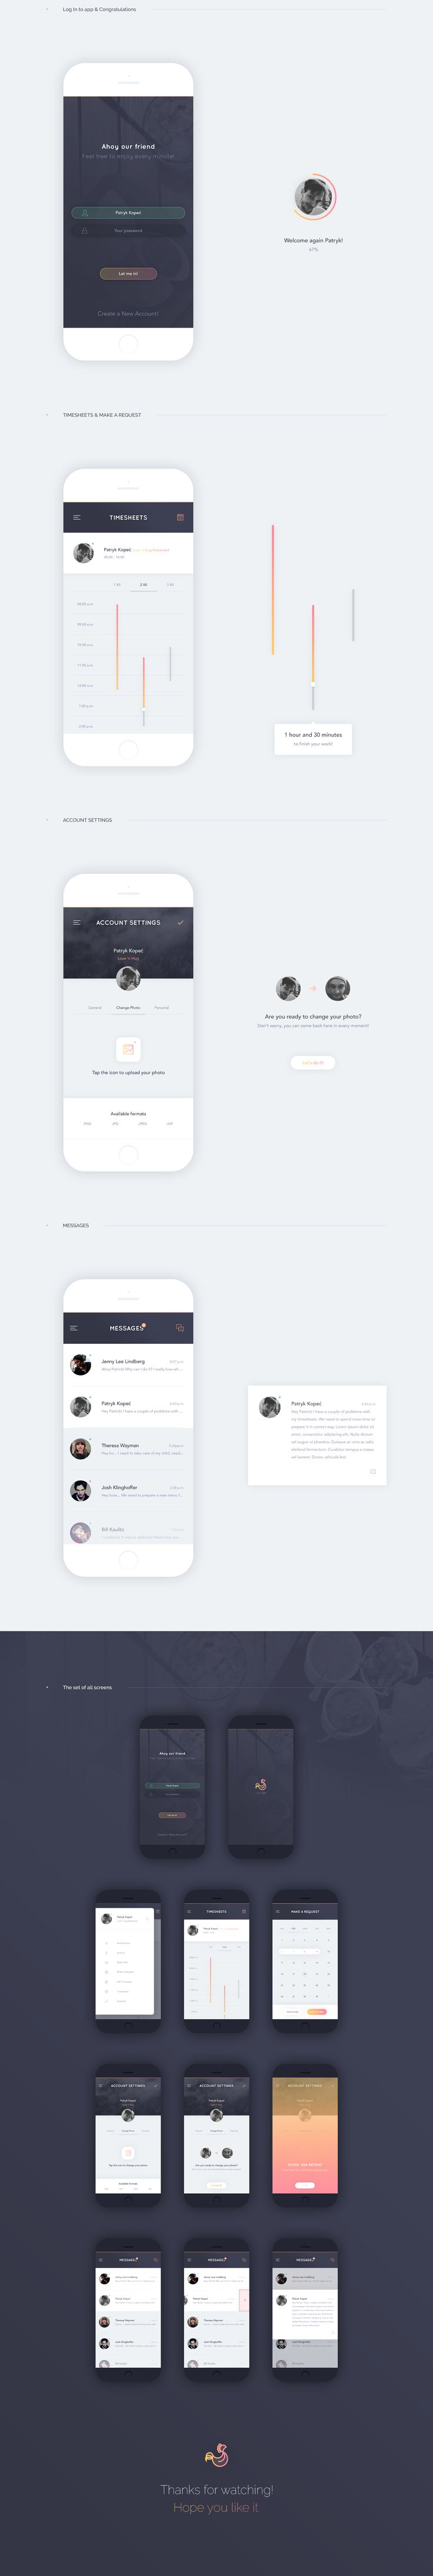 Roostr - Mobile App on Behance